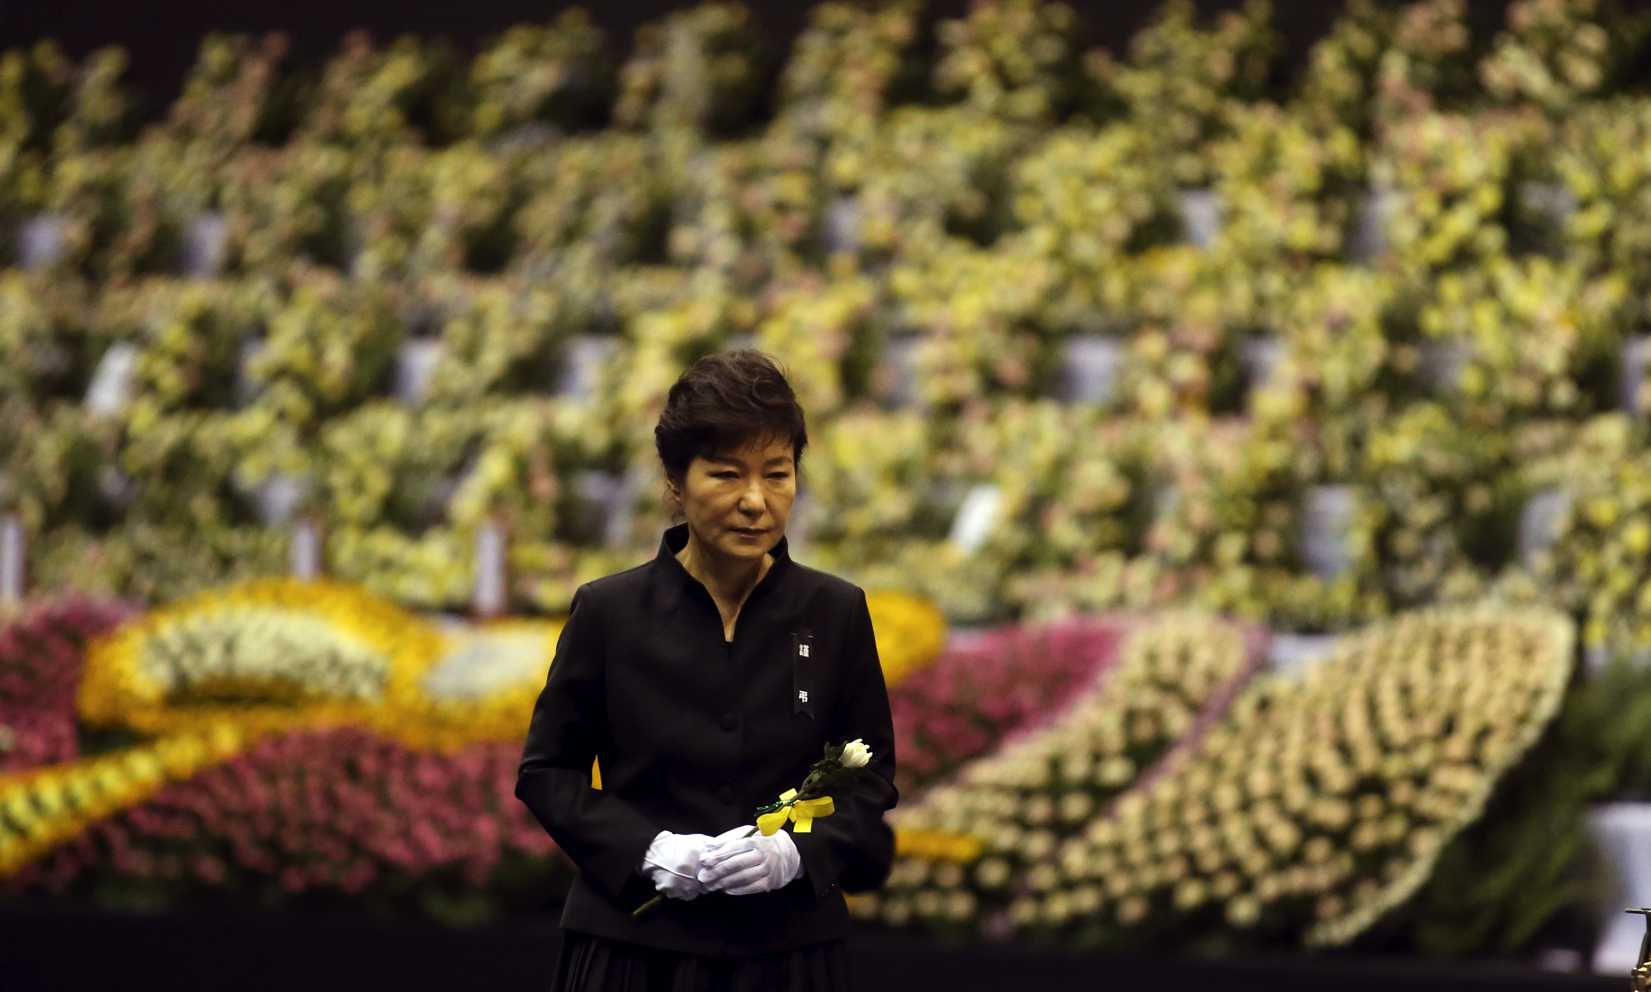 South Korean President Park Geun-hye pays tribute to the victims of the sunken ferry Sewol at a group memorial altar in Ansan, south of Seoul, on Tuesday, April 29, 2014